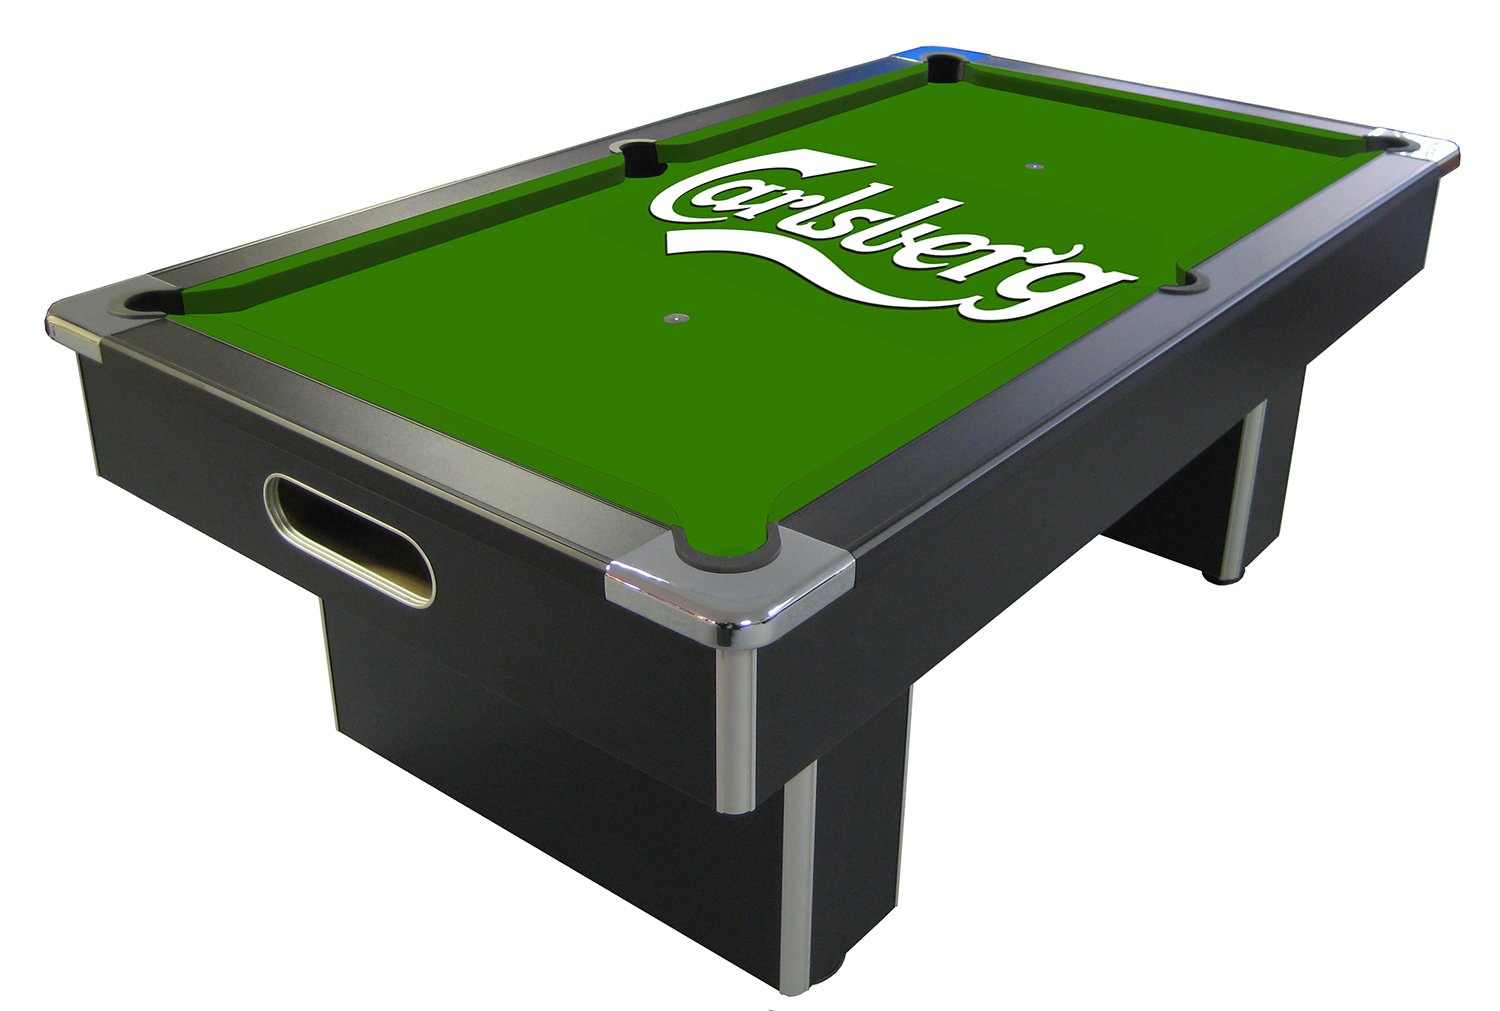 Carlsberg slate bed pool table 6 ft 7 ft liberty games - Pool table images ...